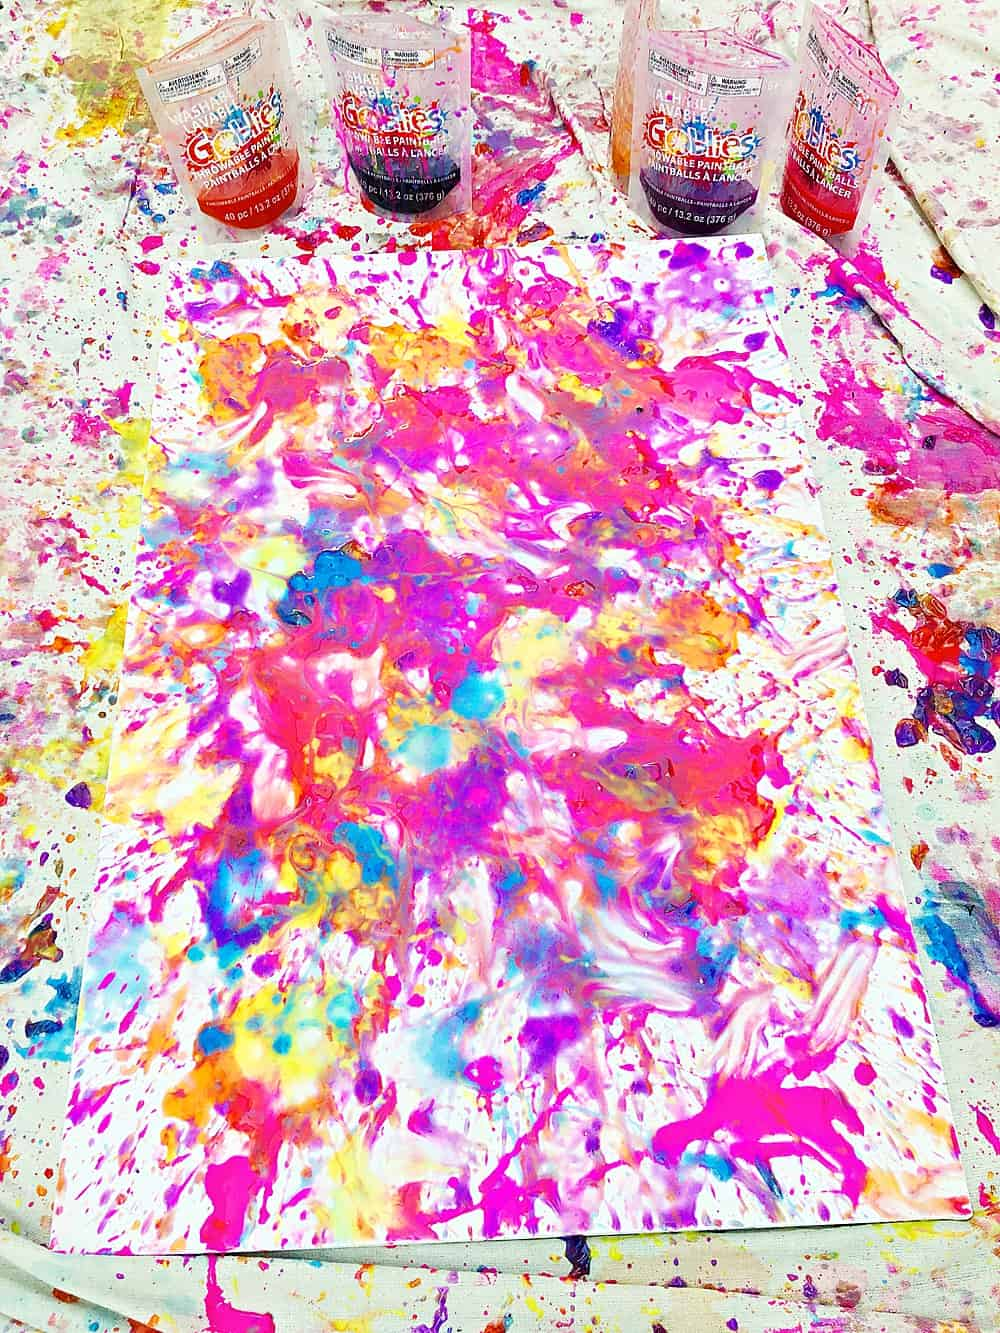 Read below to see how we set up this fun paint ball painting activity while keeping messes to a minimum